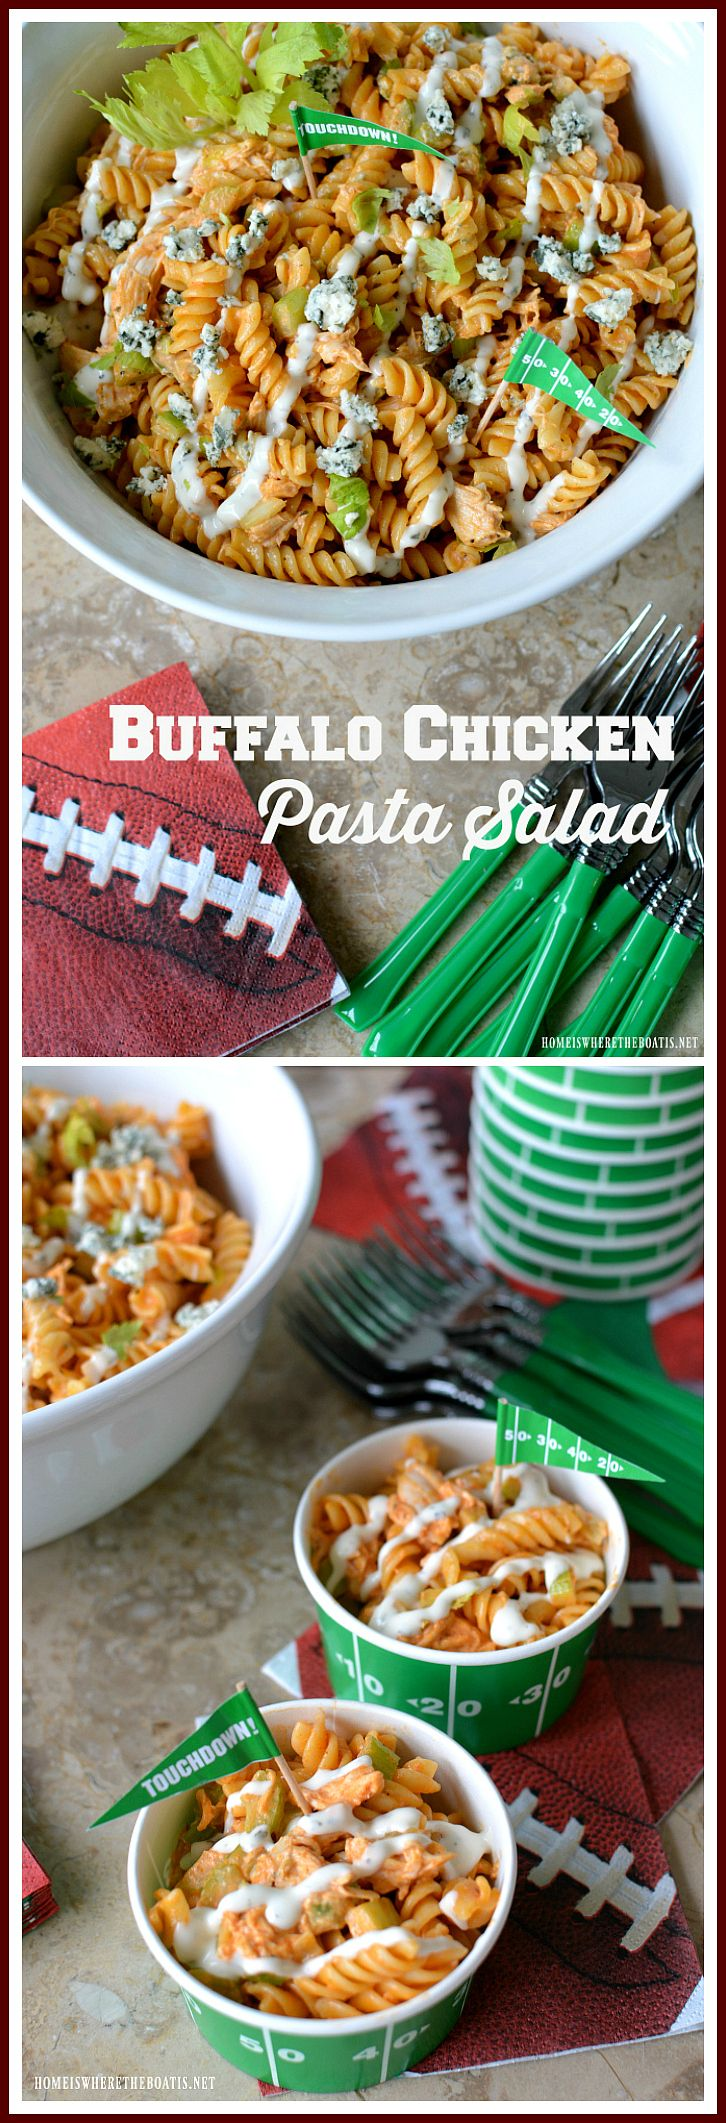 Buffalo Chicken Pasta Salad! A crowd-pleasing recipe sure to score a touchdown at your neighborhood Super Bowl party or for your next tailgate! | homeiswheretheboatis.net #footballfood #SuperBowl #buffalochickenpastasalad